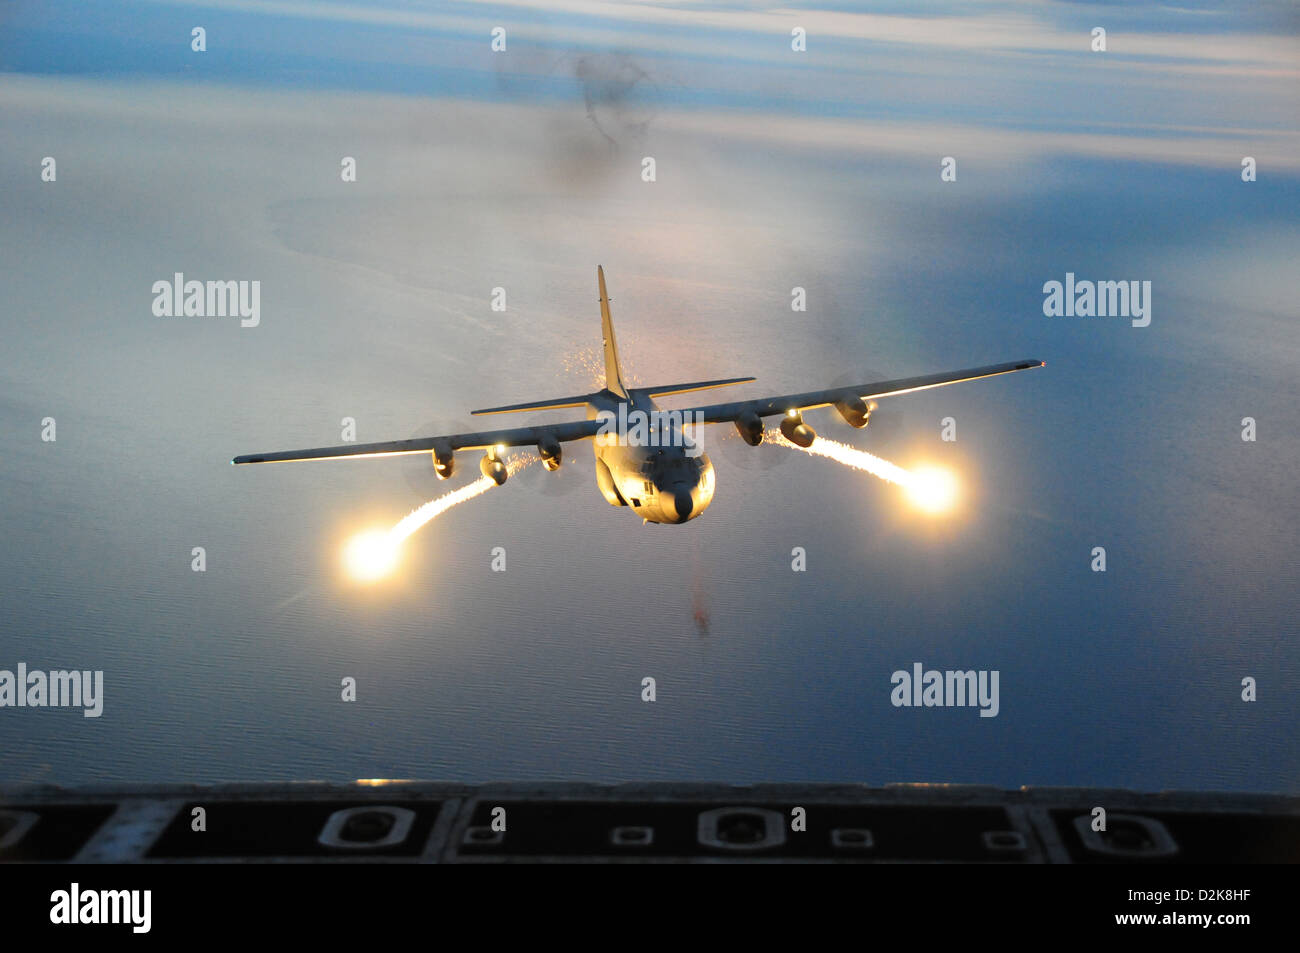 A C-130 night training mission uses live flares as an aerial infrared countermeasure used to defeat infrared homing - Stock Image